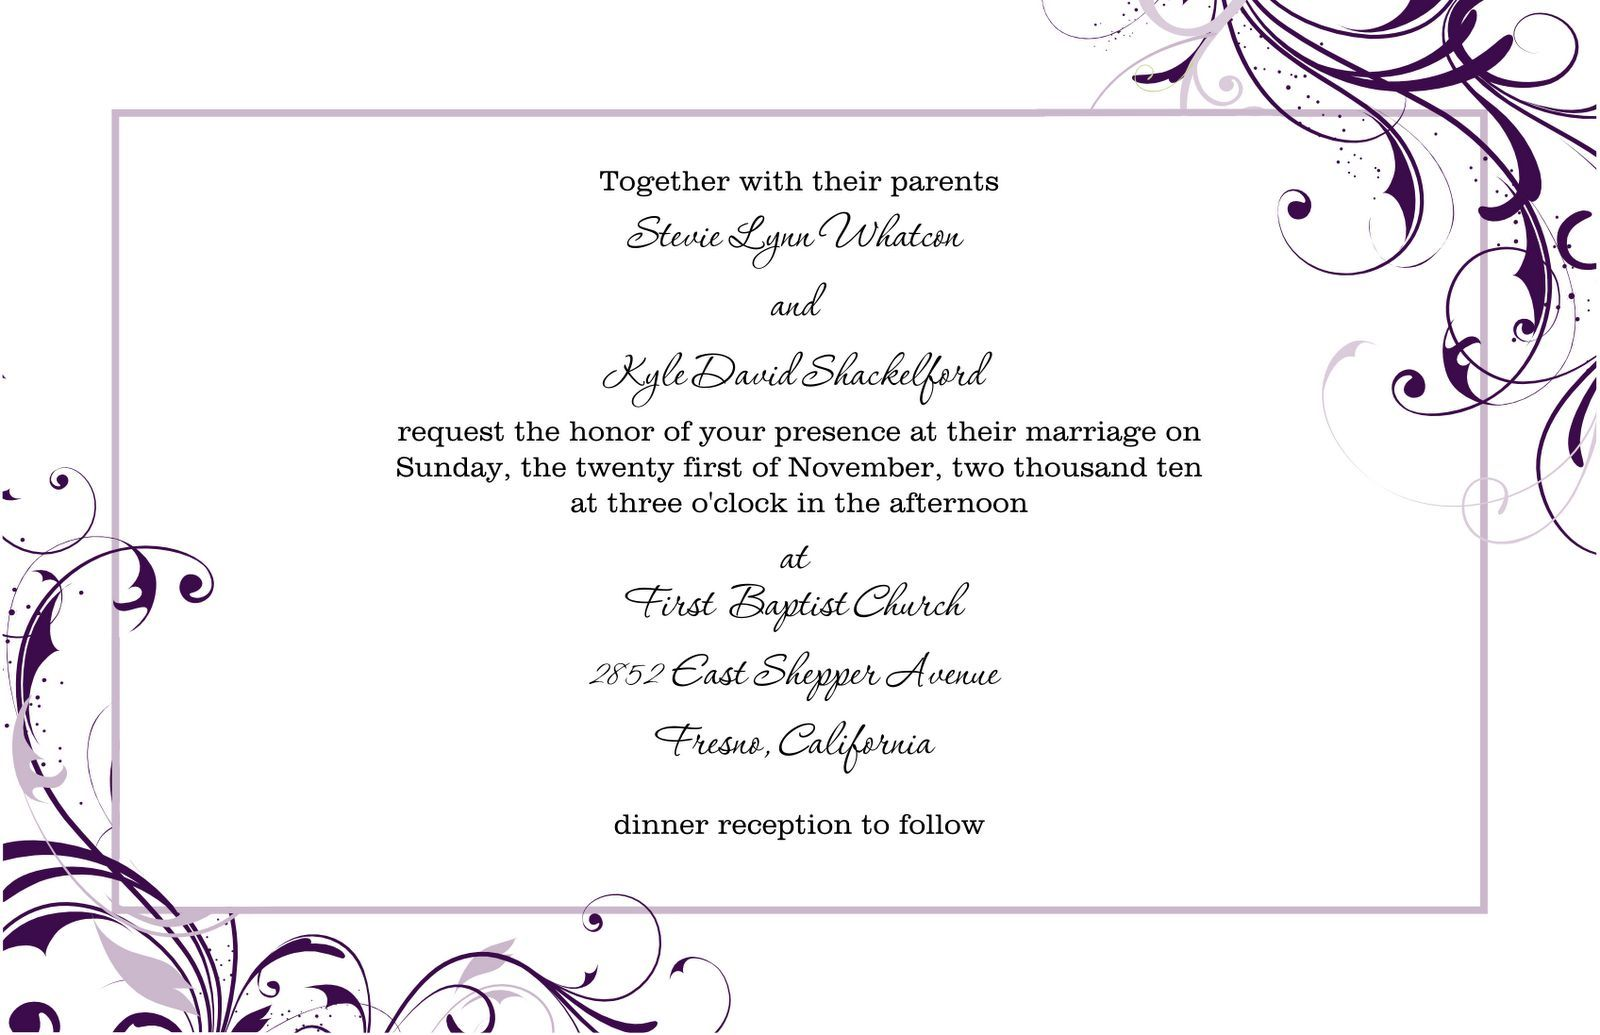 Free blank wedding invitation templates for microsoft word wedding free blank wedding invitation templates for microsoft word filmwisefo